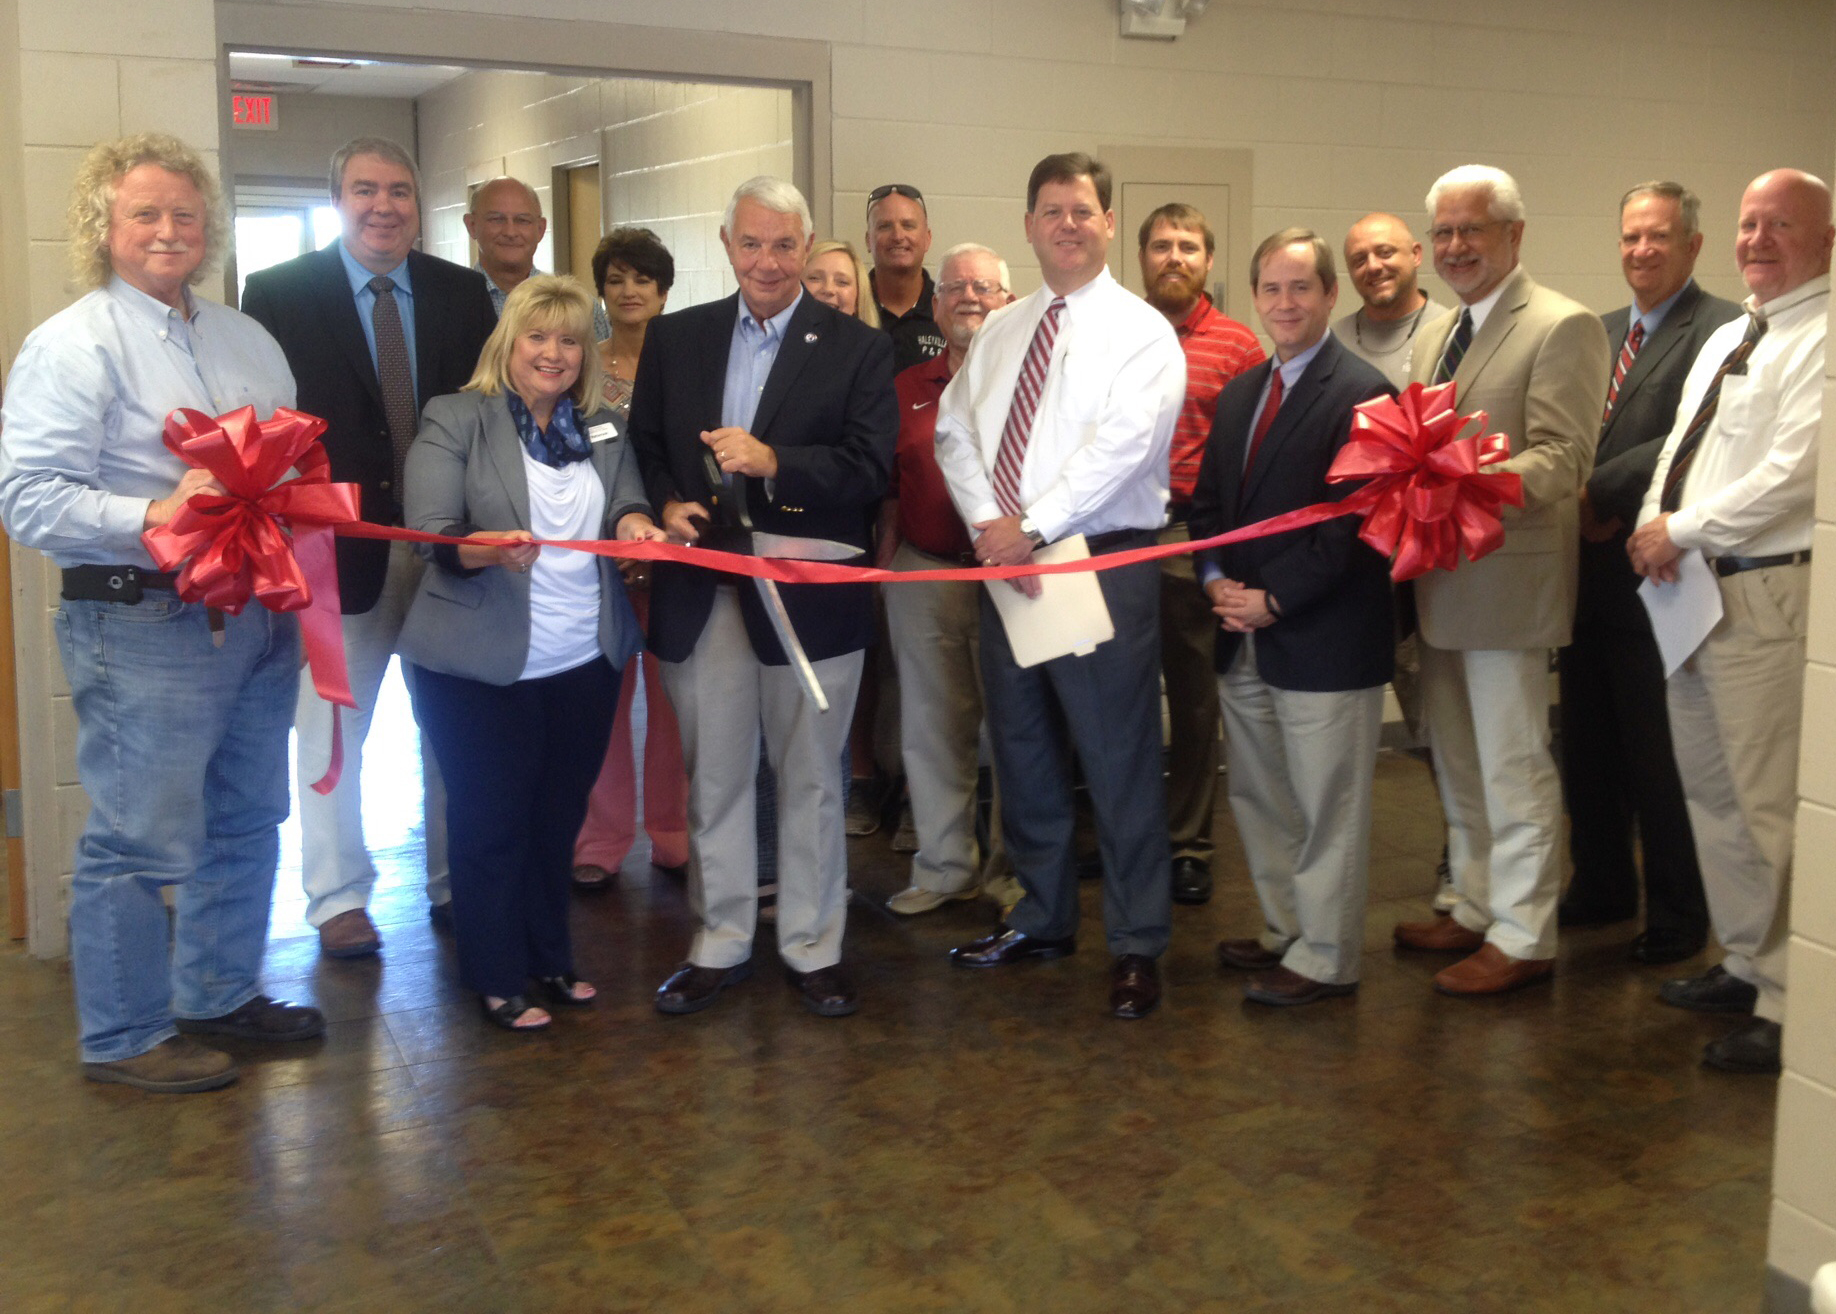 Ribbon Cutting For the Winston County AERN Center